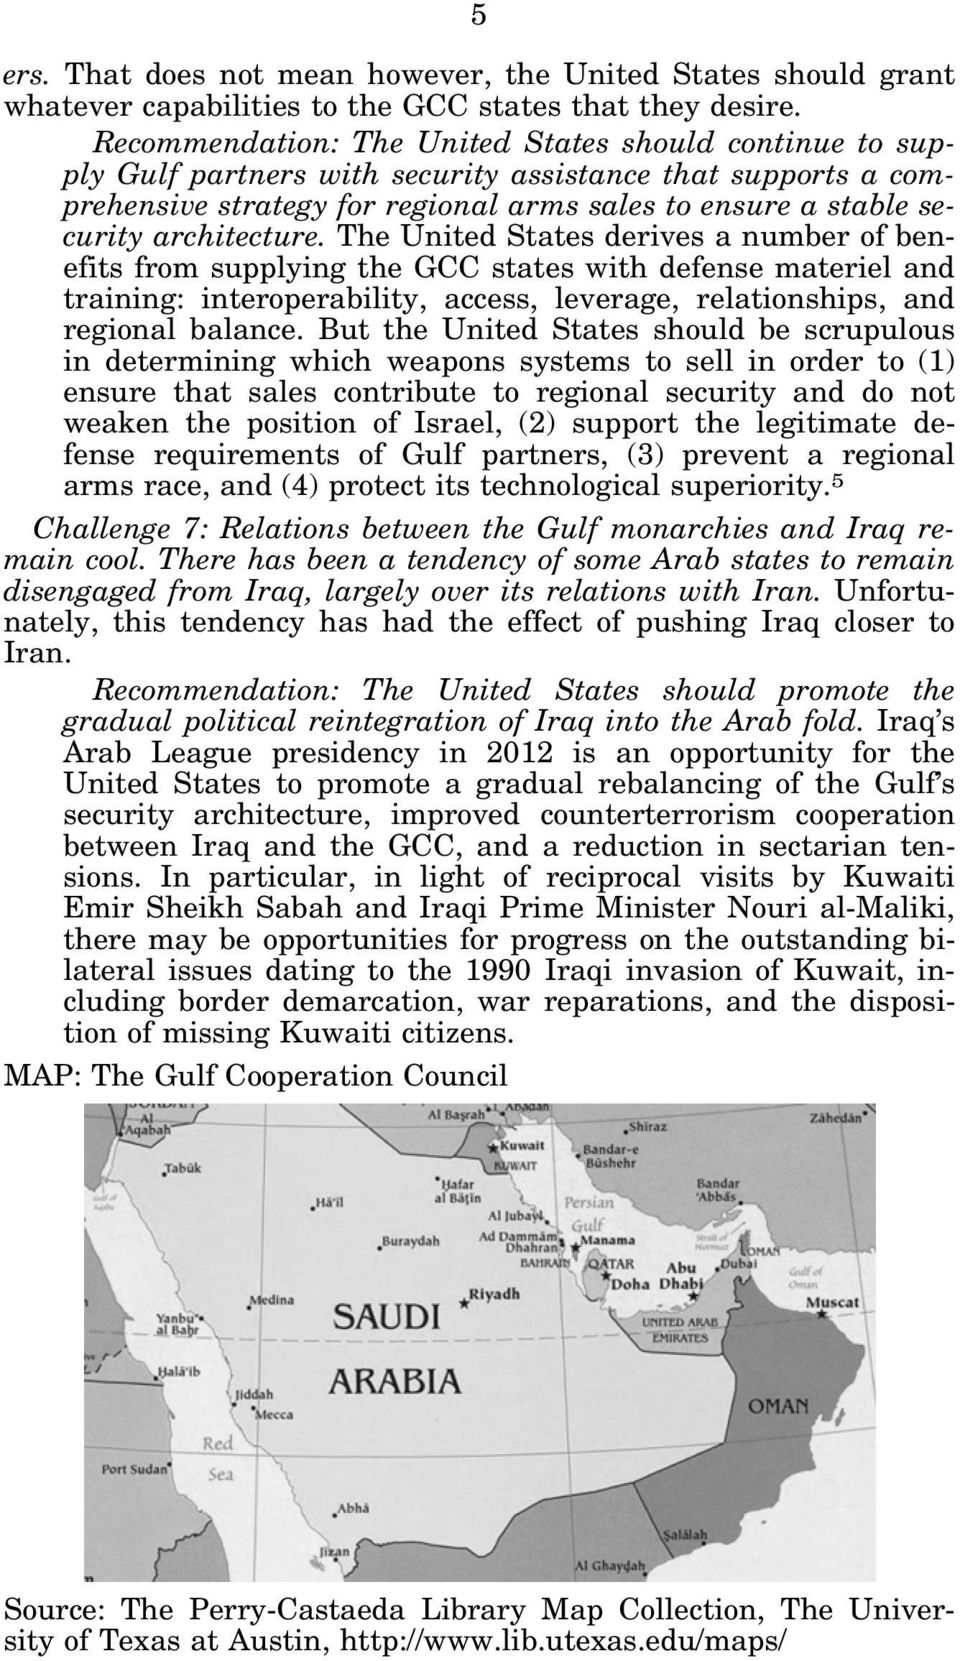 architecture. The United States derives a number of benefits from supplying the GCC states with defense materiel and training: interoperability, access, leverage, relationships, and regional balance.